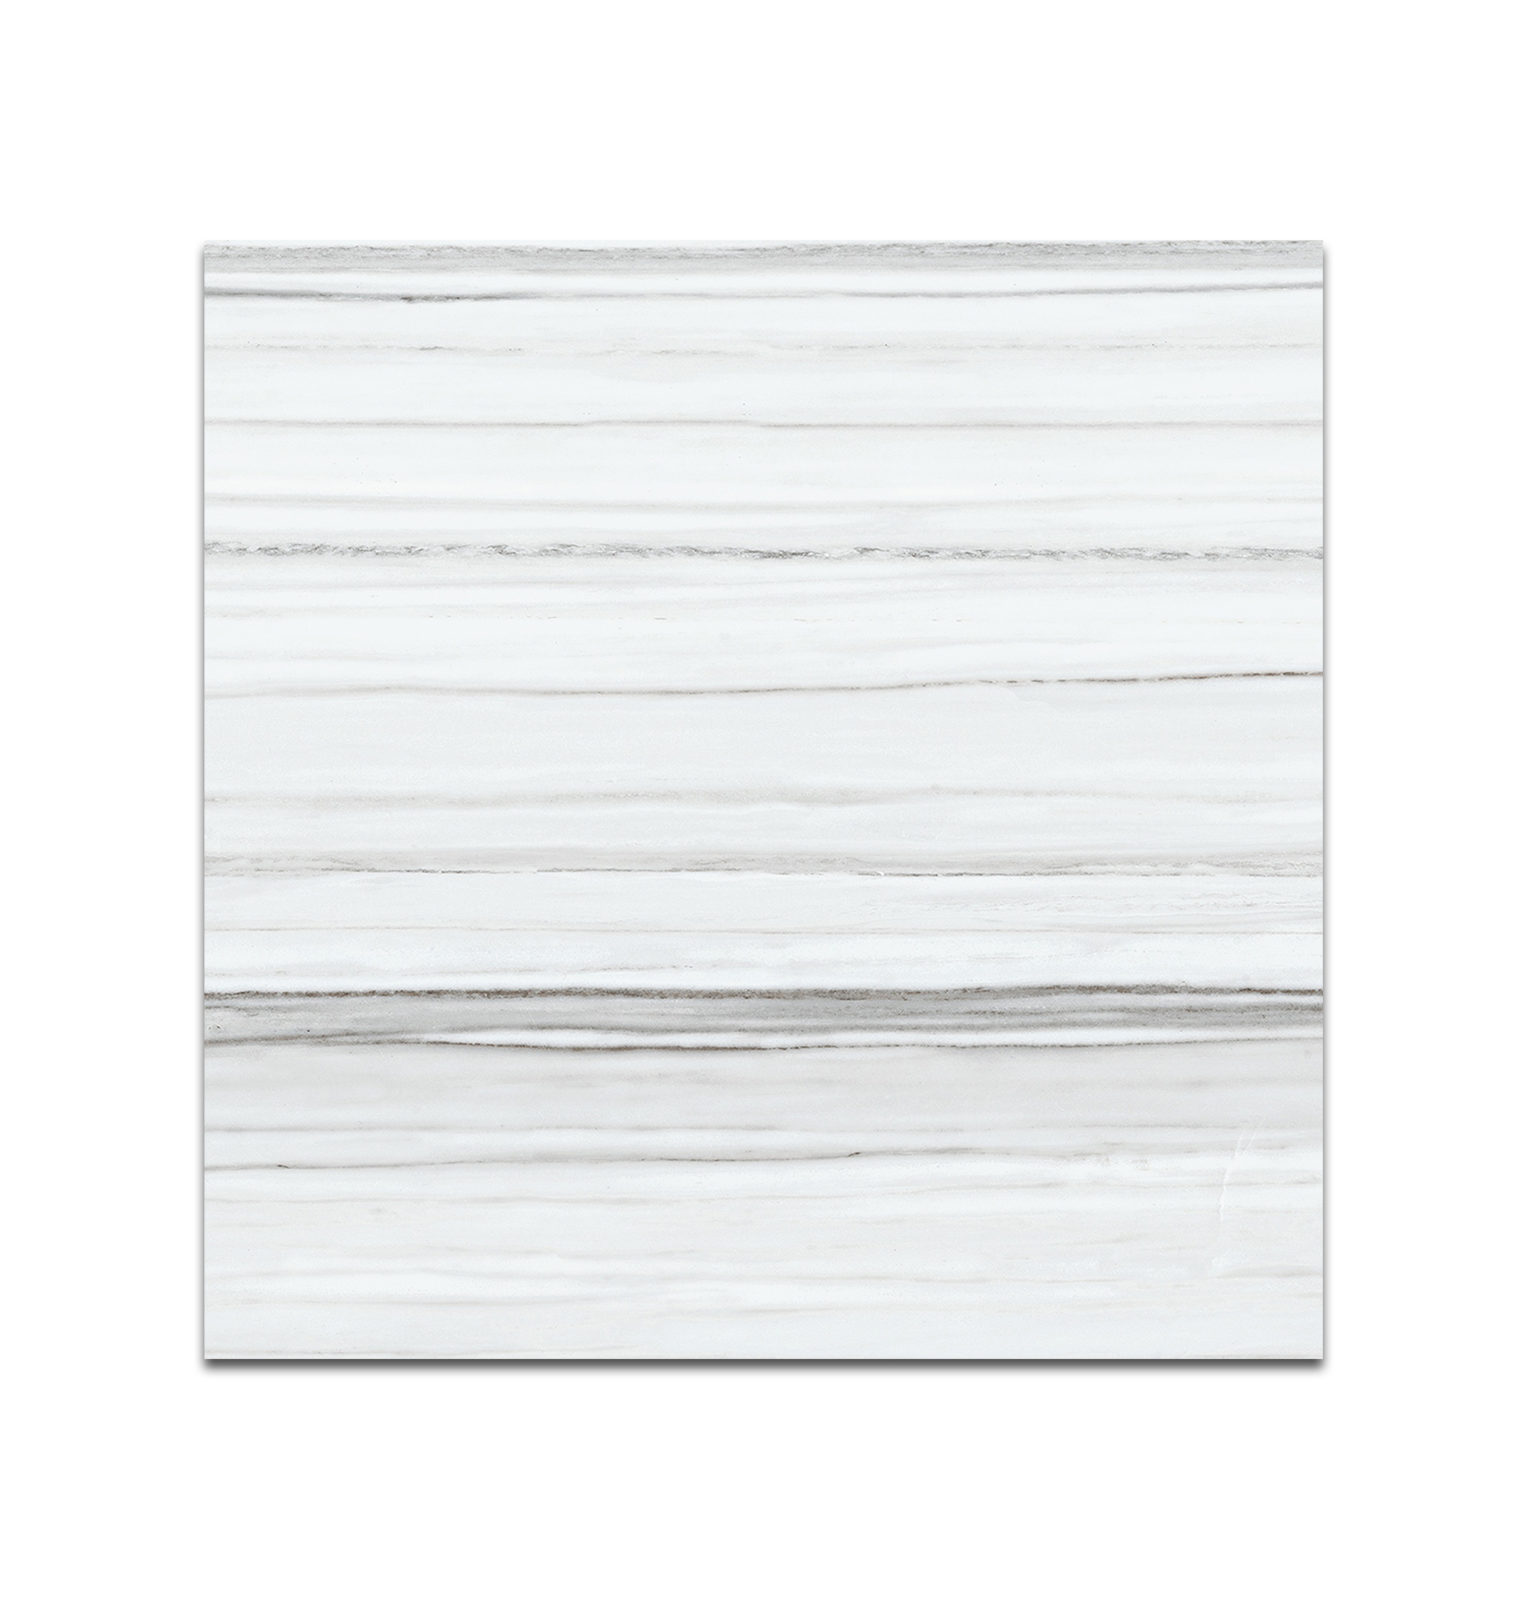 Interceramic Contour Zebrino Ceramic Tile X Schillings - 16 x 16 white ceramic floor tile